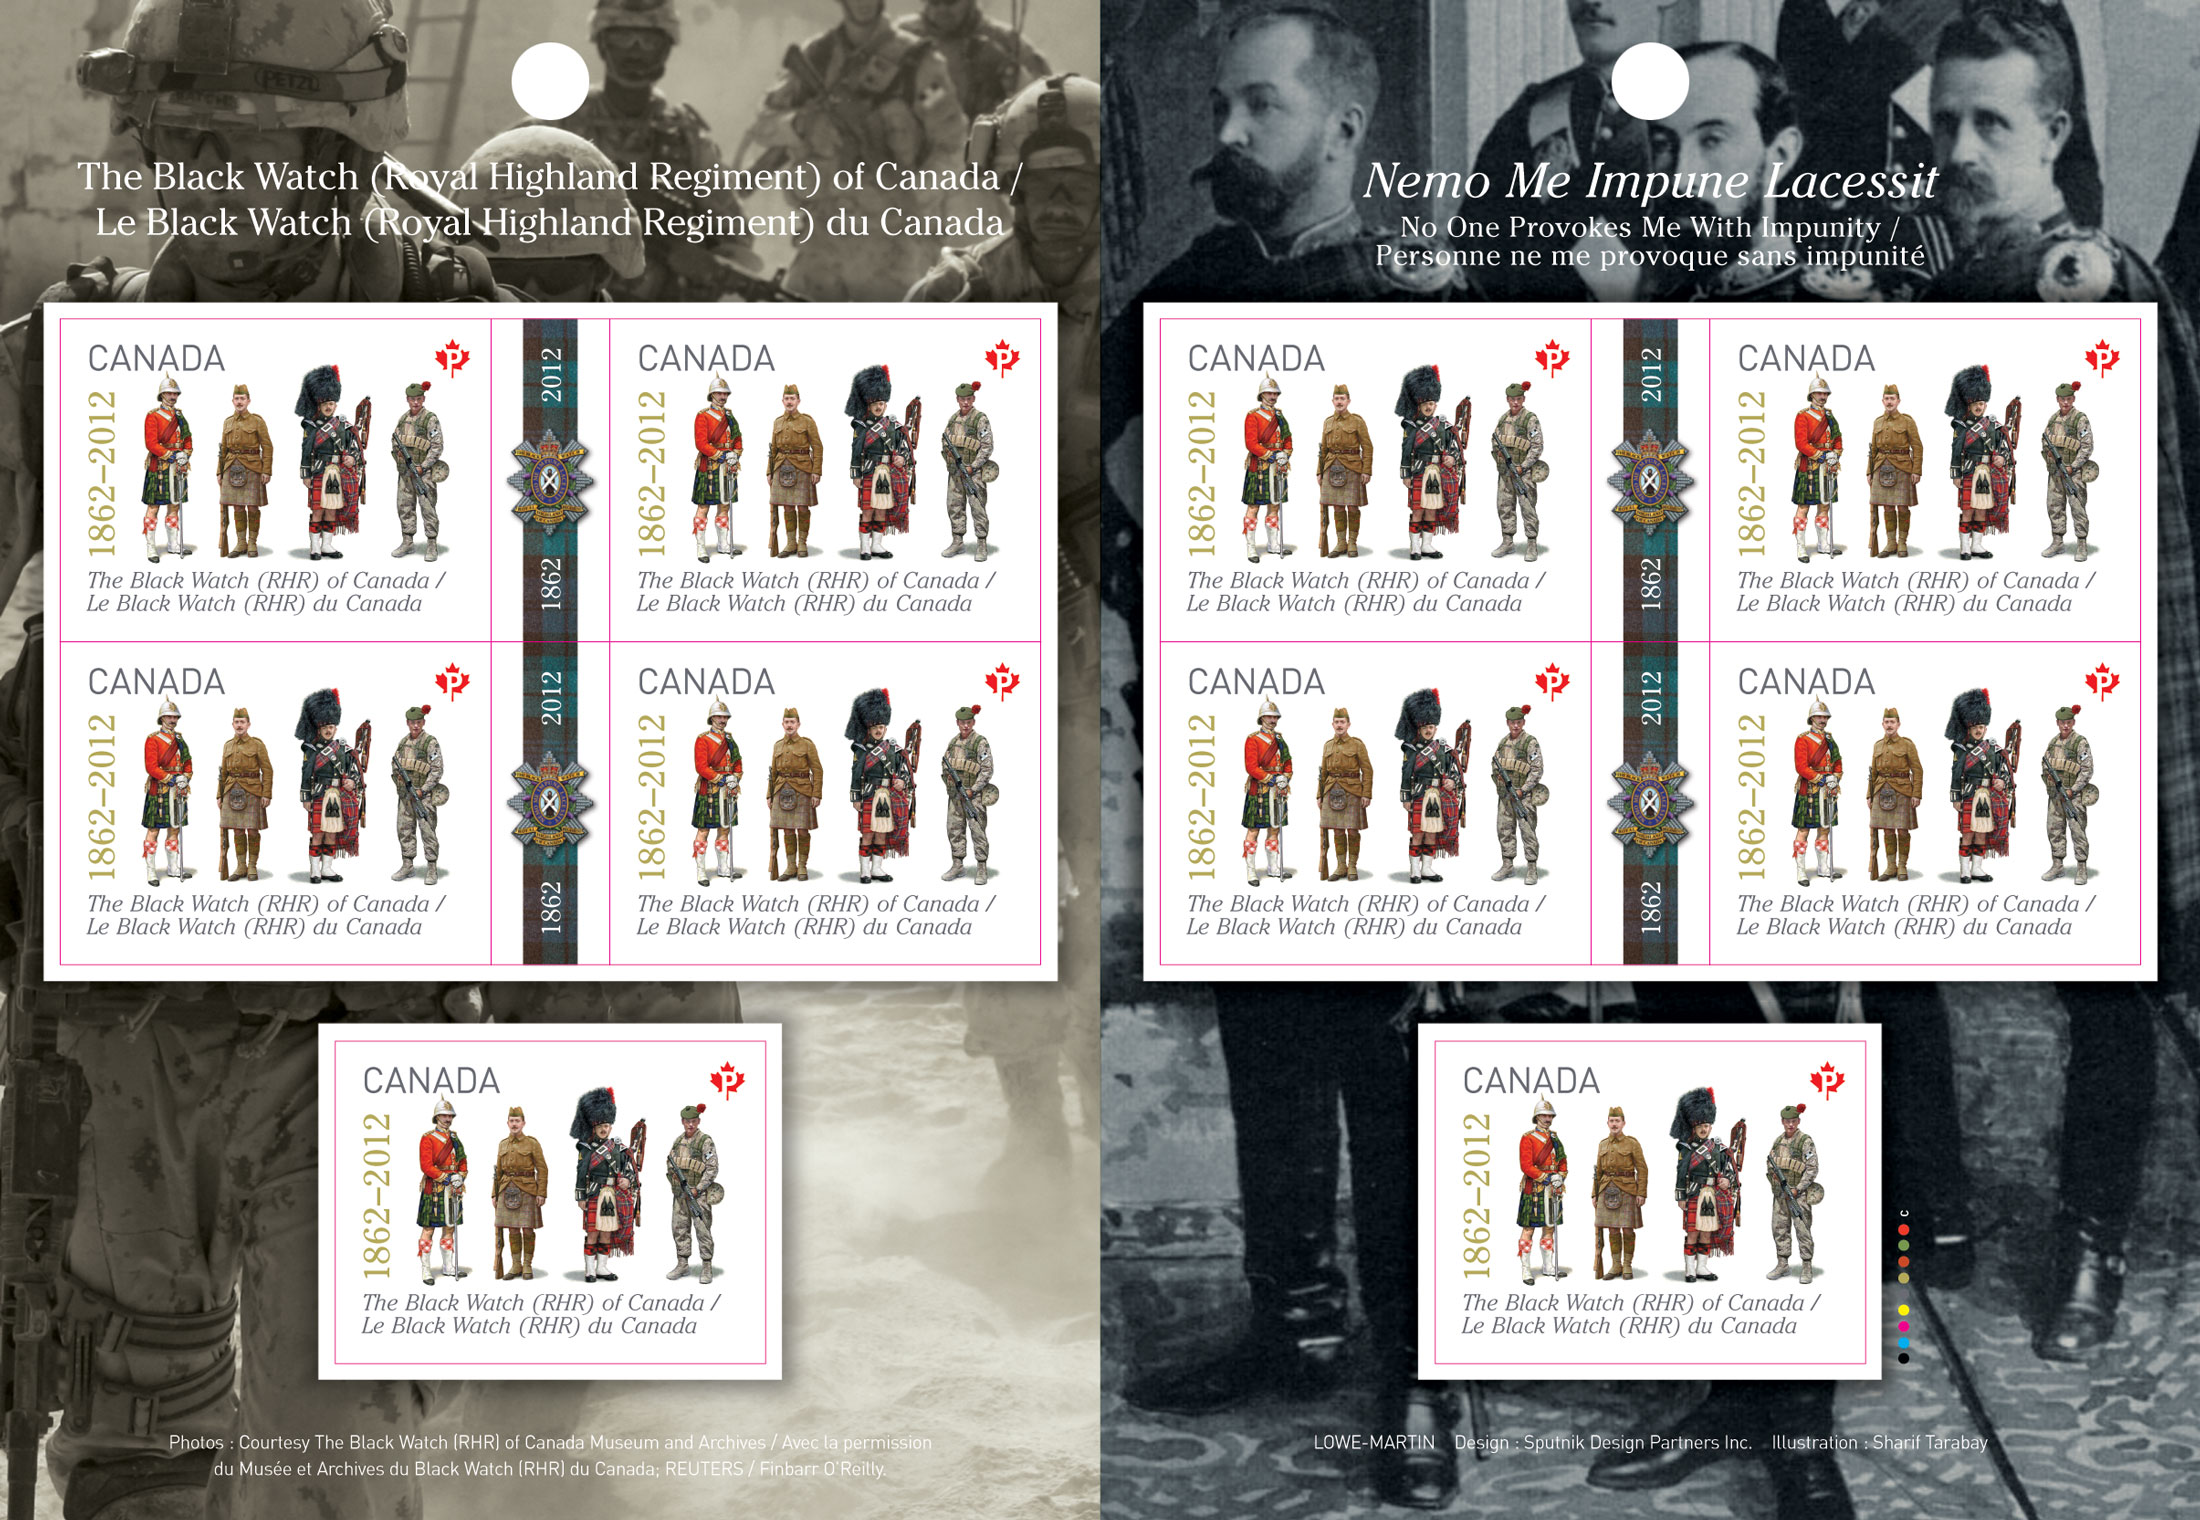 canada-post-150th-anniversary-military-in-canada-stamps-booklet-inside-sputnik-design-partners-toronto.jpg